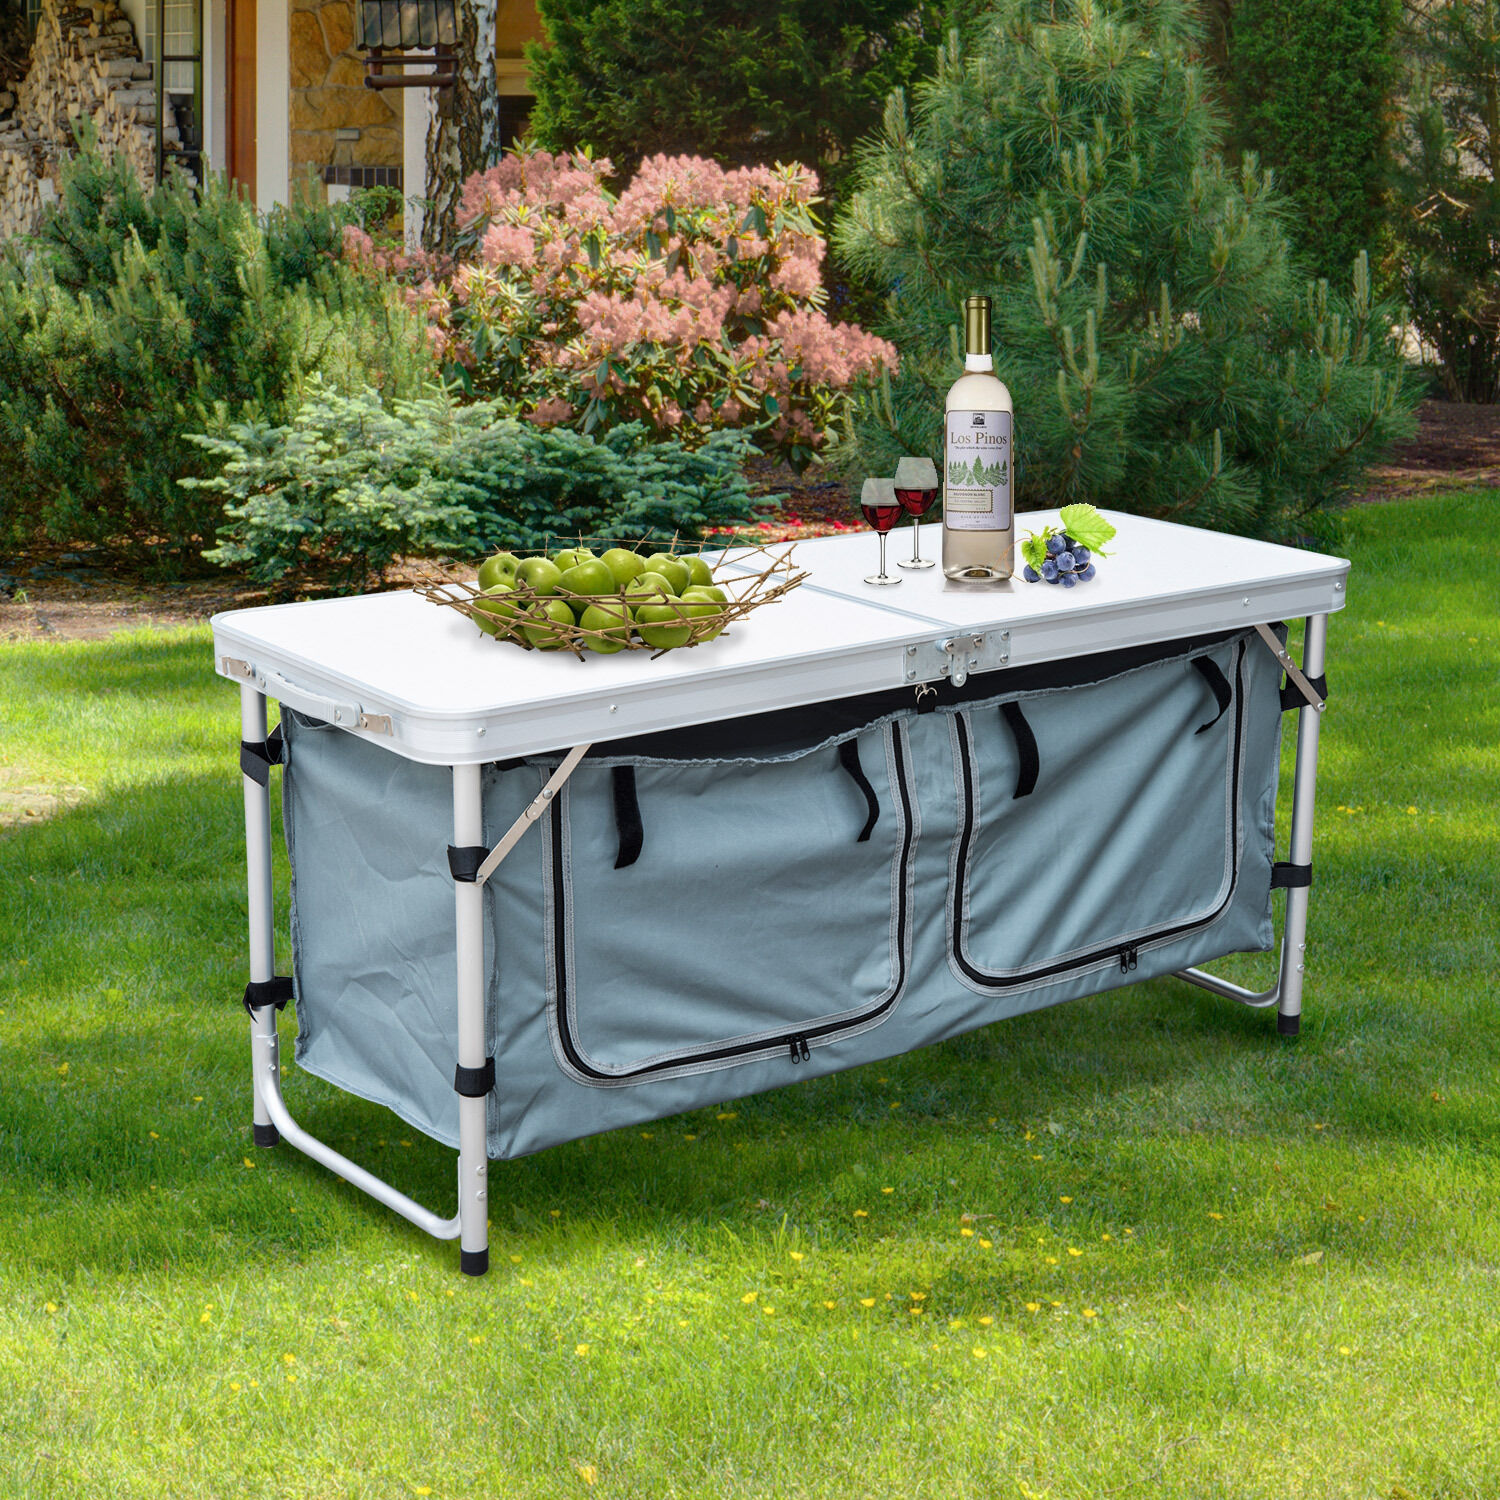 Portable Outdoor Kitchens: PICNIC TABLE FOLDING Portable Adjustable Height Aluminum